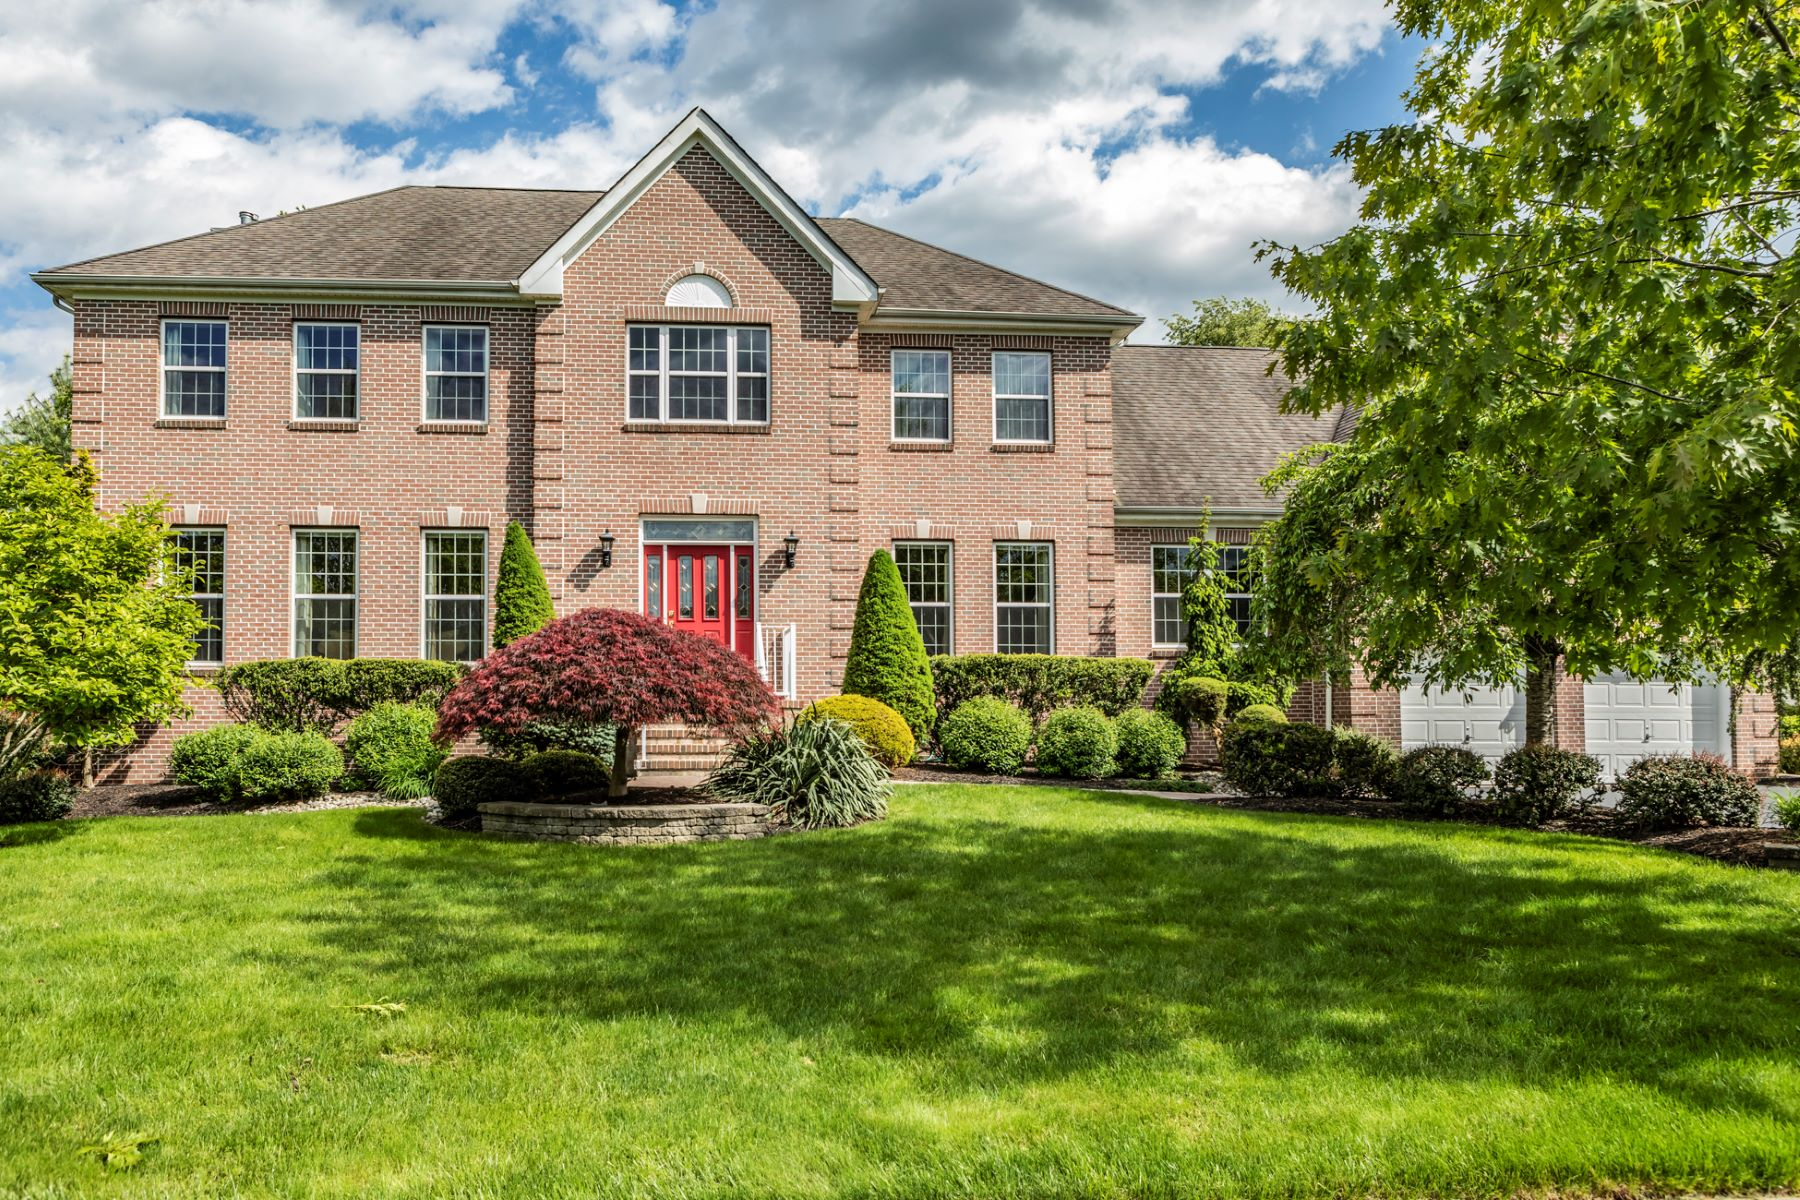 Single Family Homes for Sale at Perfection for Every Kind of Entertaining 5 Mahogany Court Plainsboro, New Jersey 08536 United States